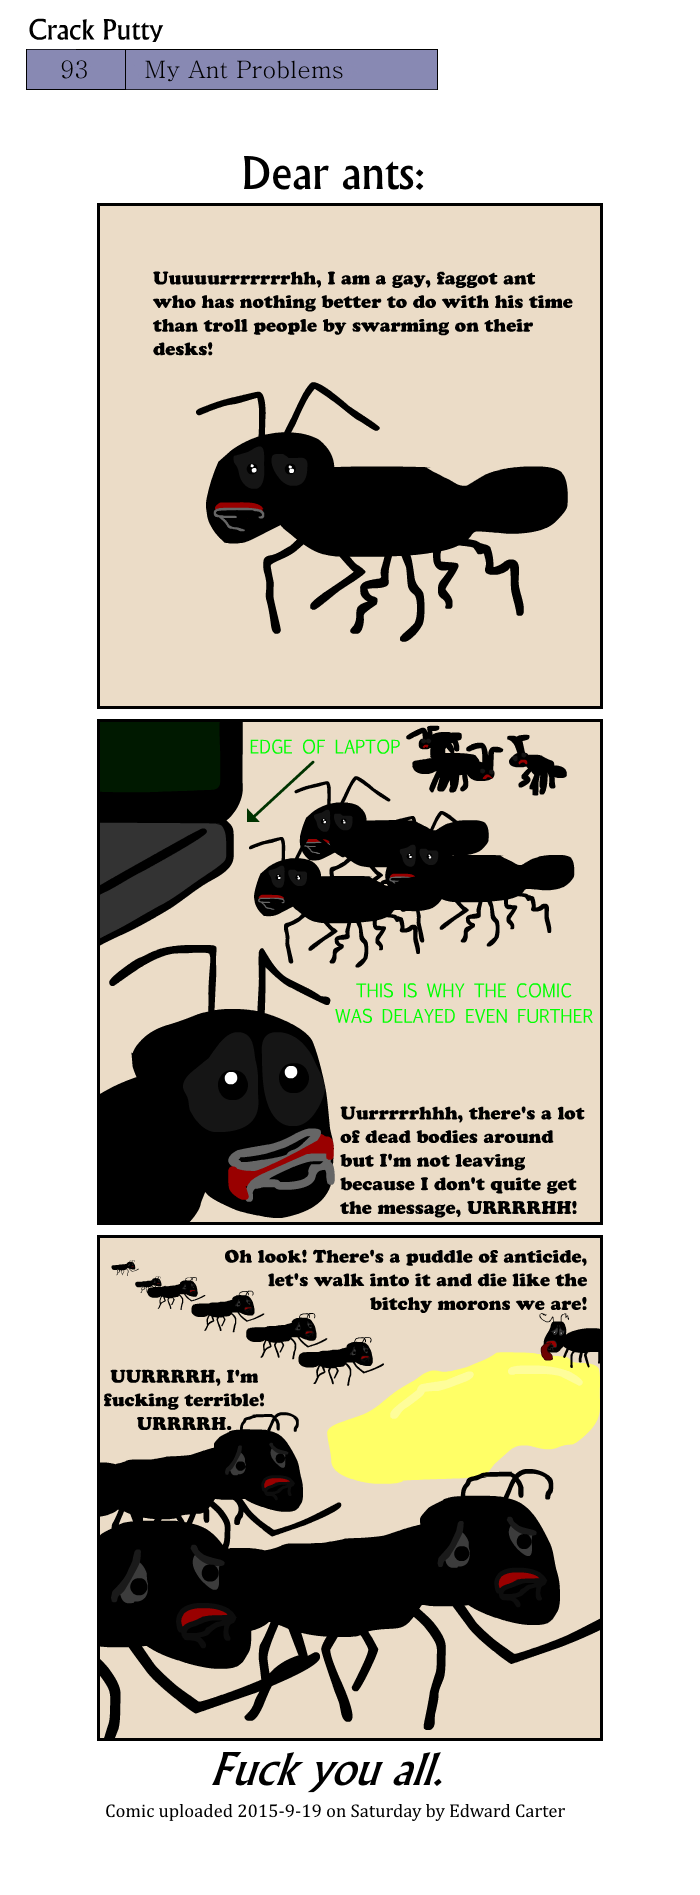 My Ant Problems